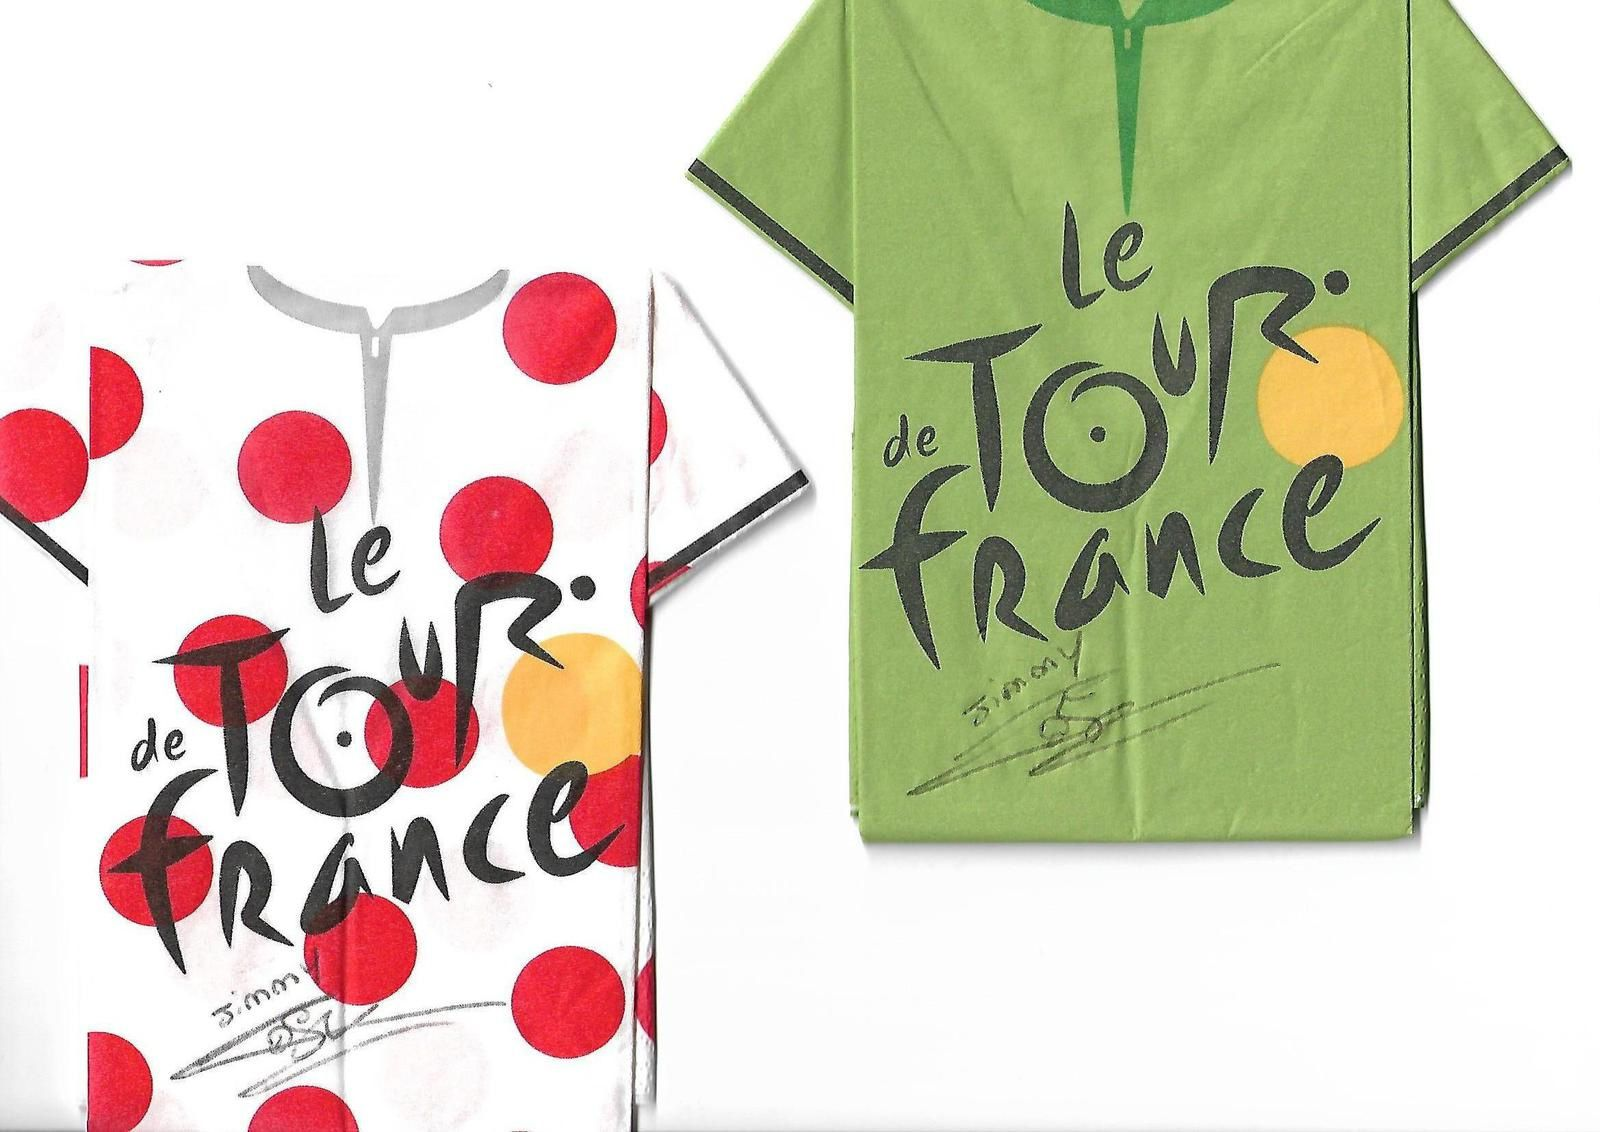 Tour de France:Etape du Puy en Velay